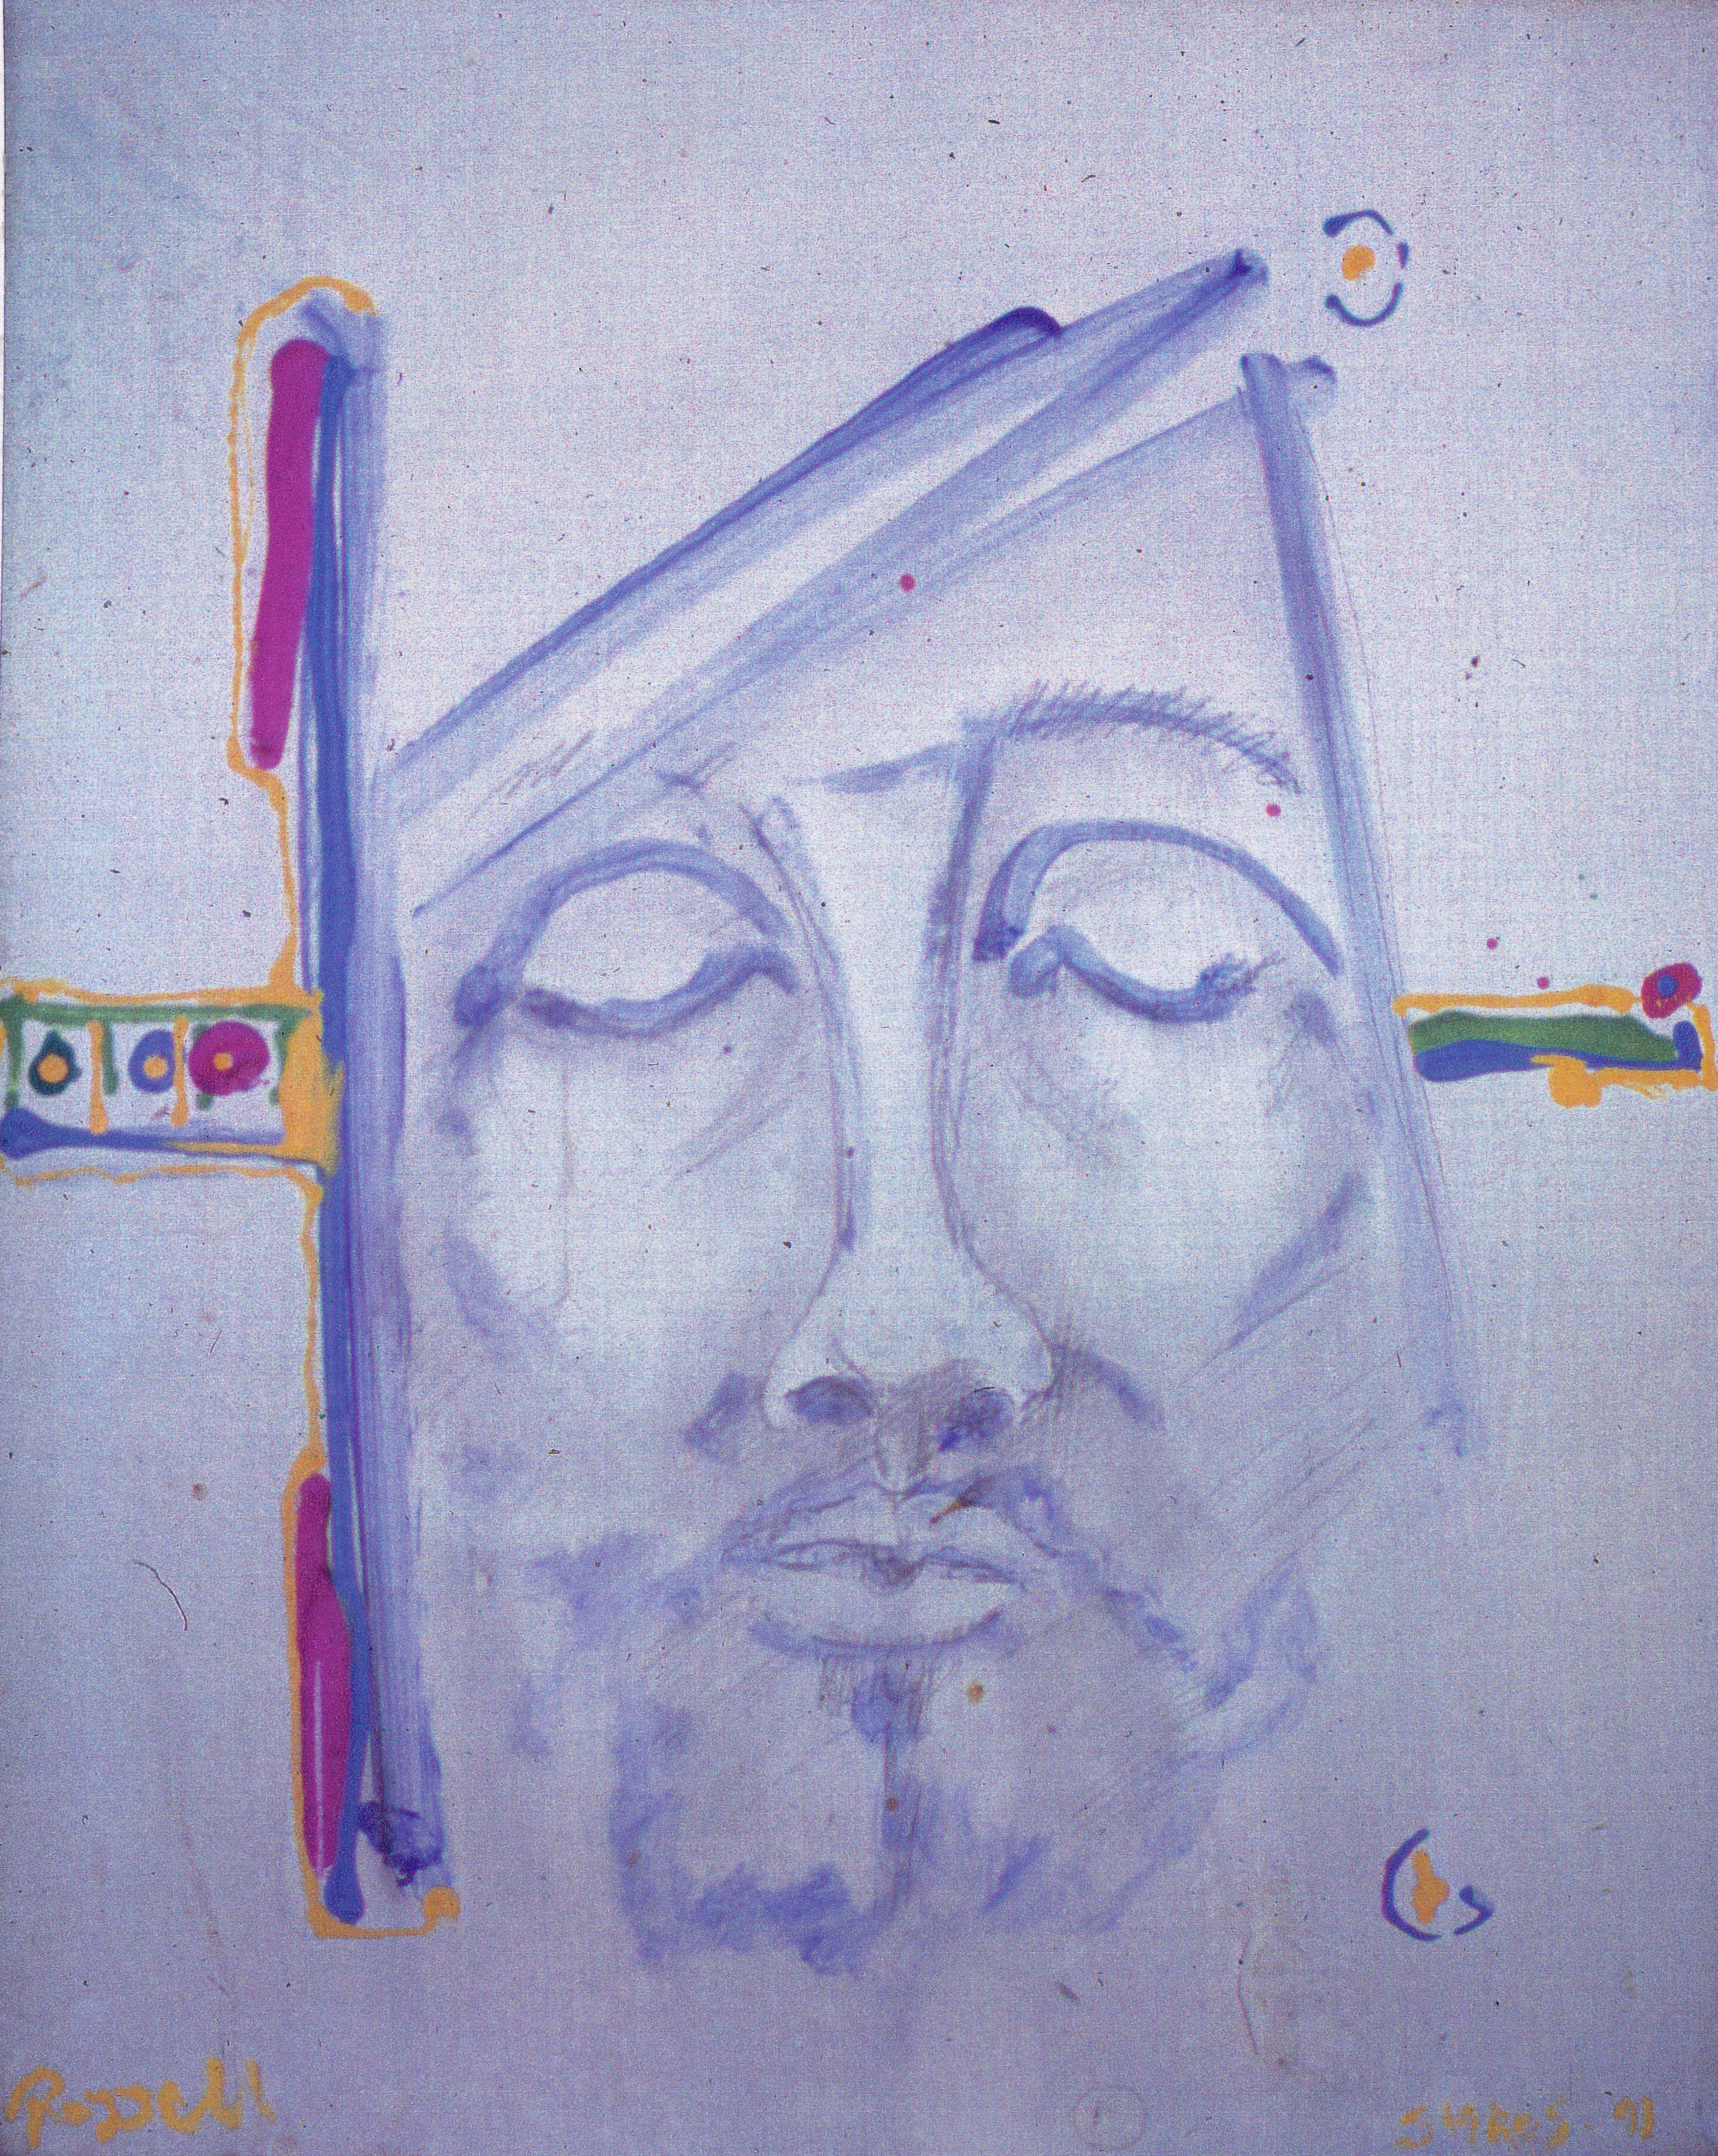 Untitled, Pencil Sketch in Blue 1991